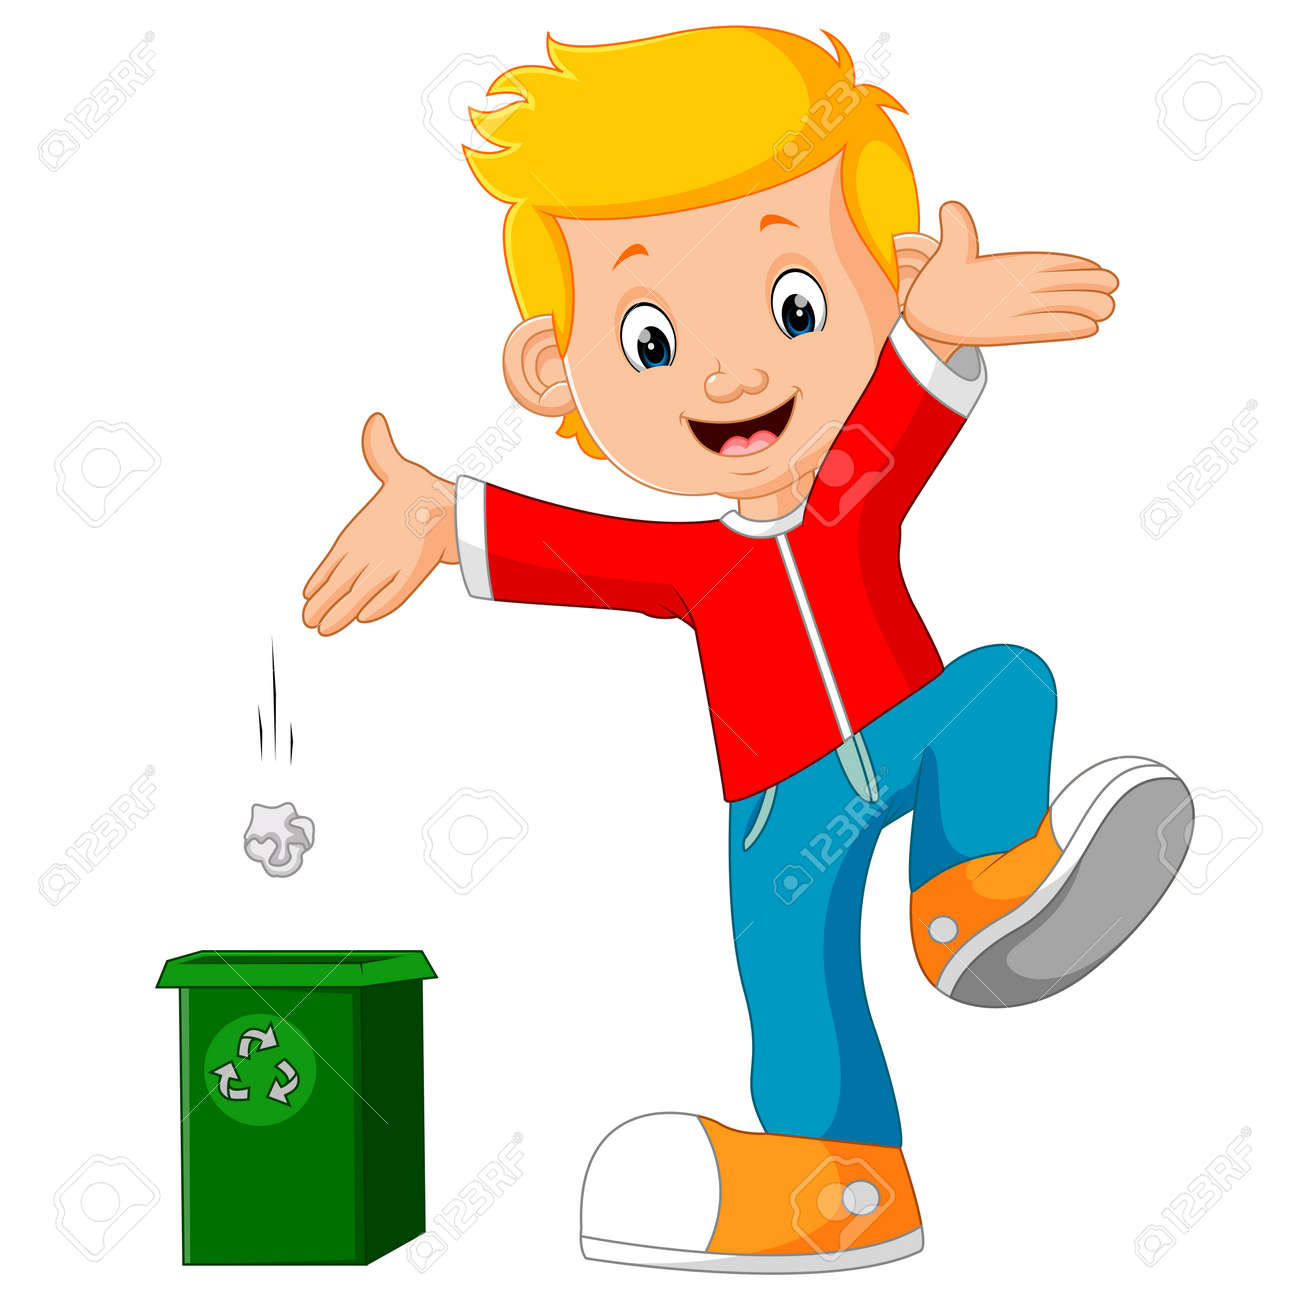 Boy character throws garbage in trash - 78415844